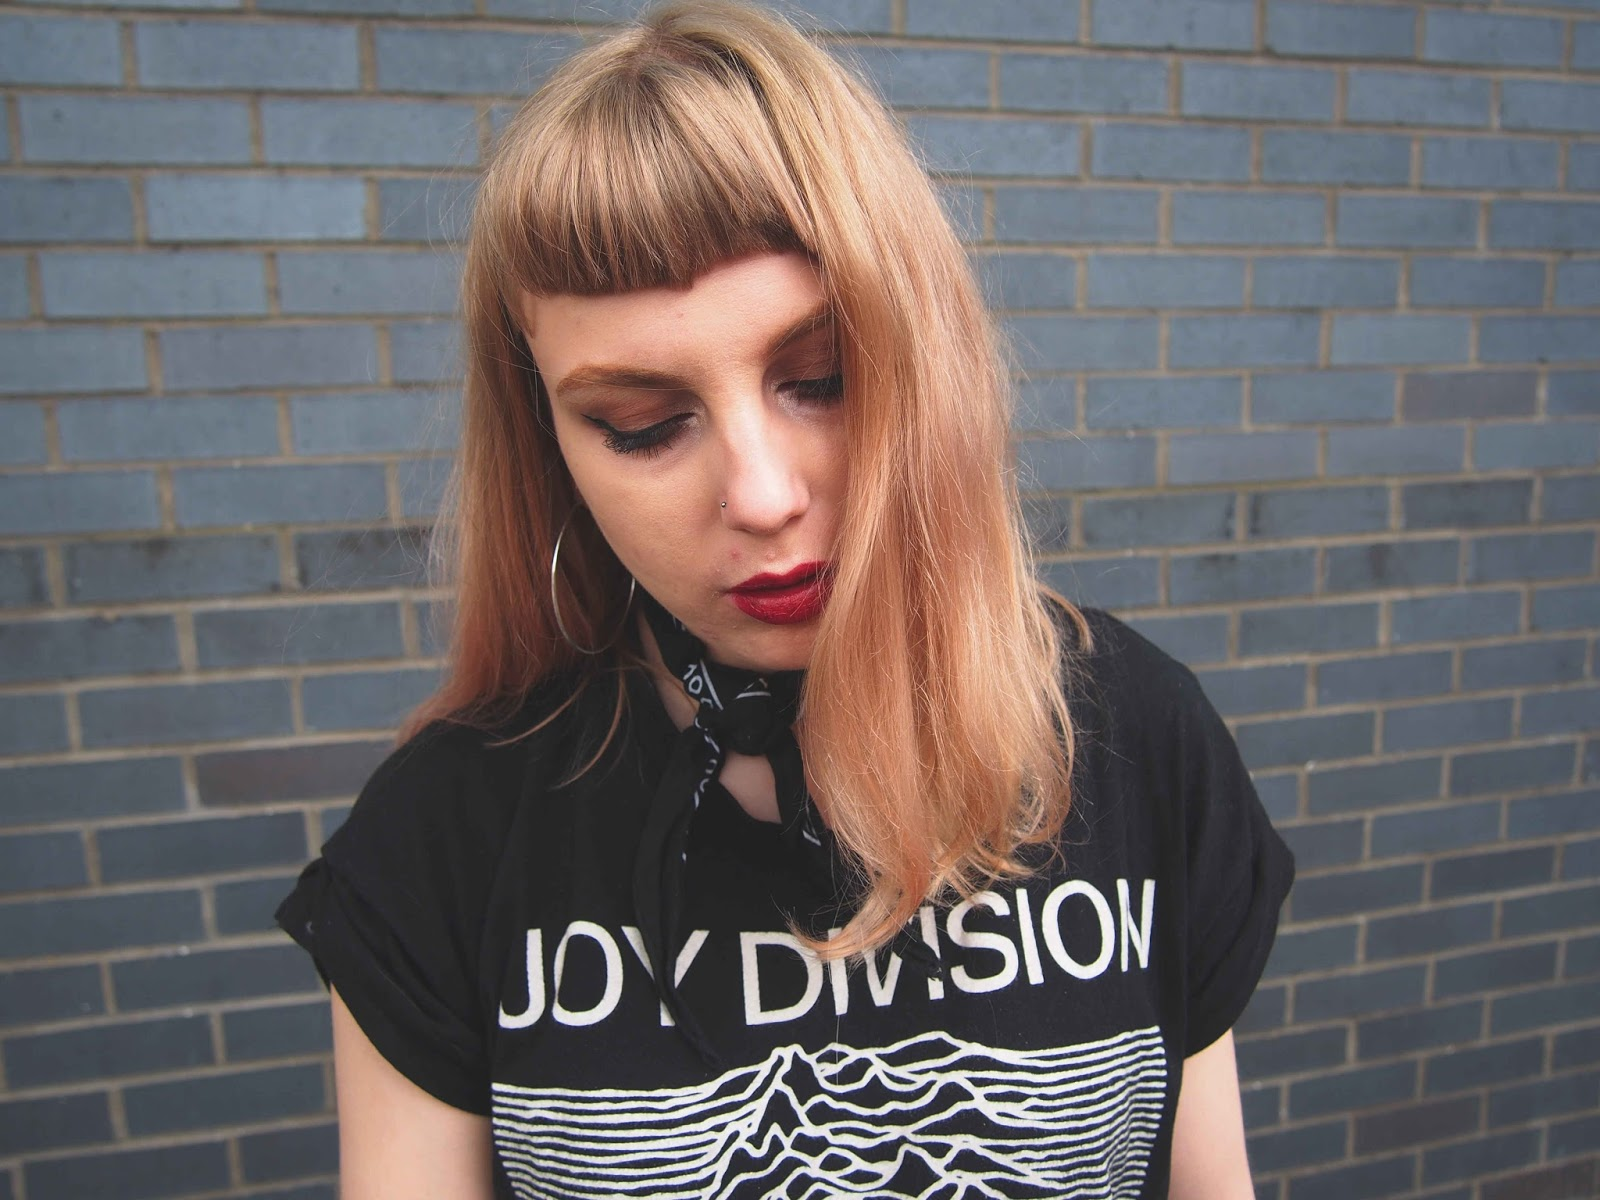 neck tie, bandana, neck scarf, joy division tee, band t-shirt, tee and jeans, topshop cain jeans, chunky heels, black skinny jeans, vintage alternative spring outfit, spring outfit inspiration, pink hair